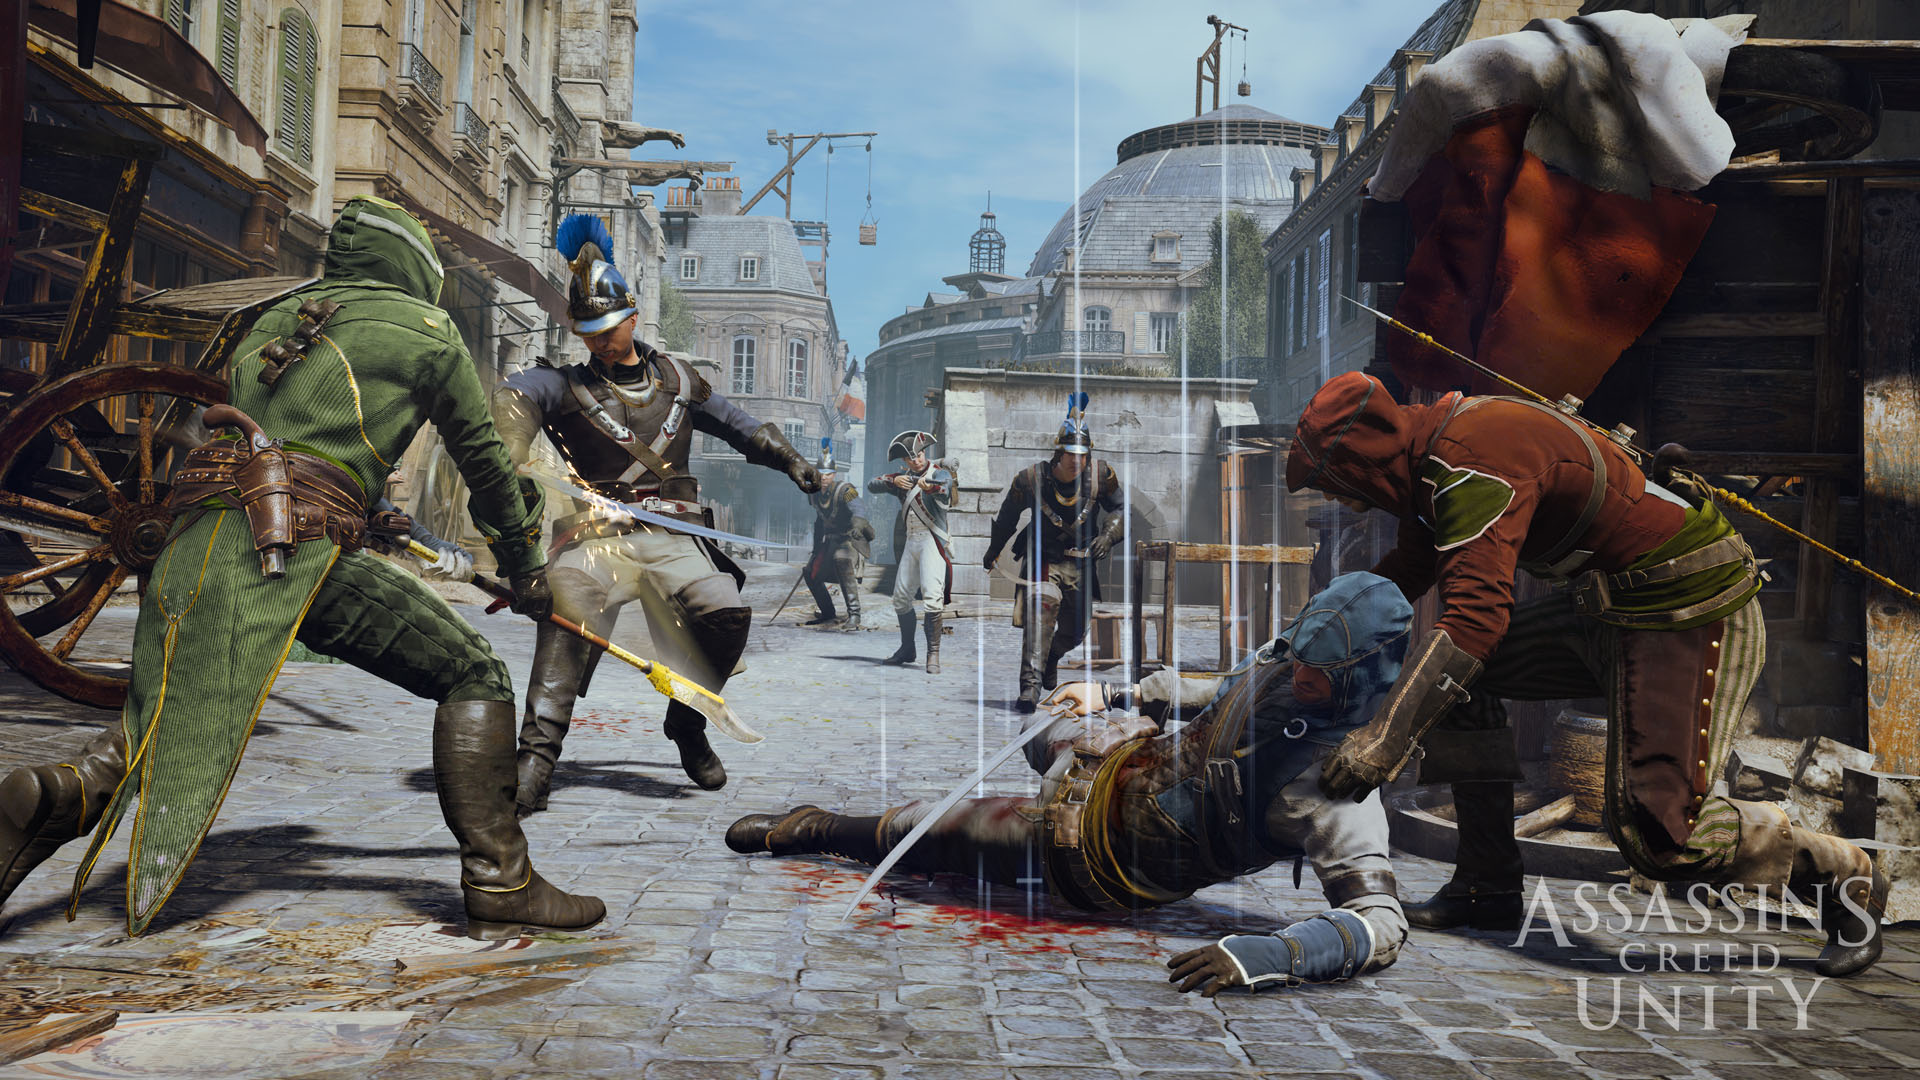 Assassins_Creed_Unity_COOP_GroupHealing_1409669059